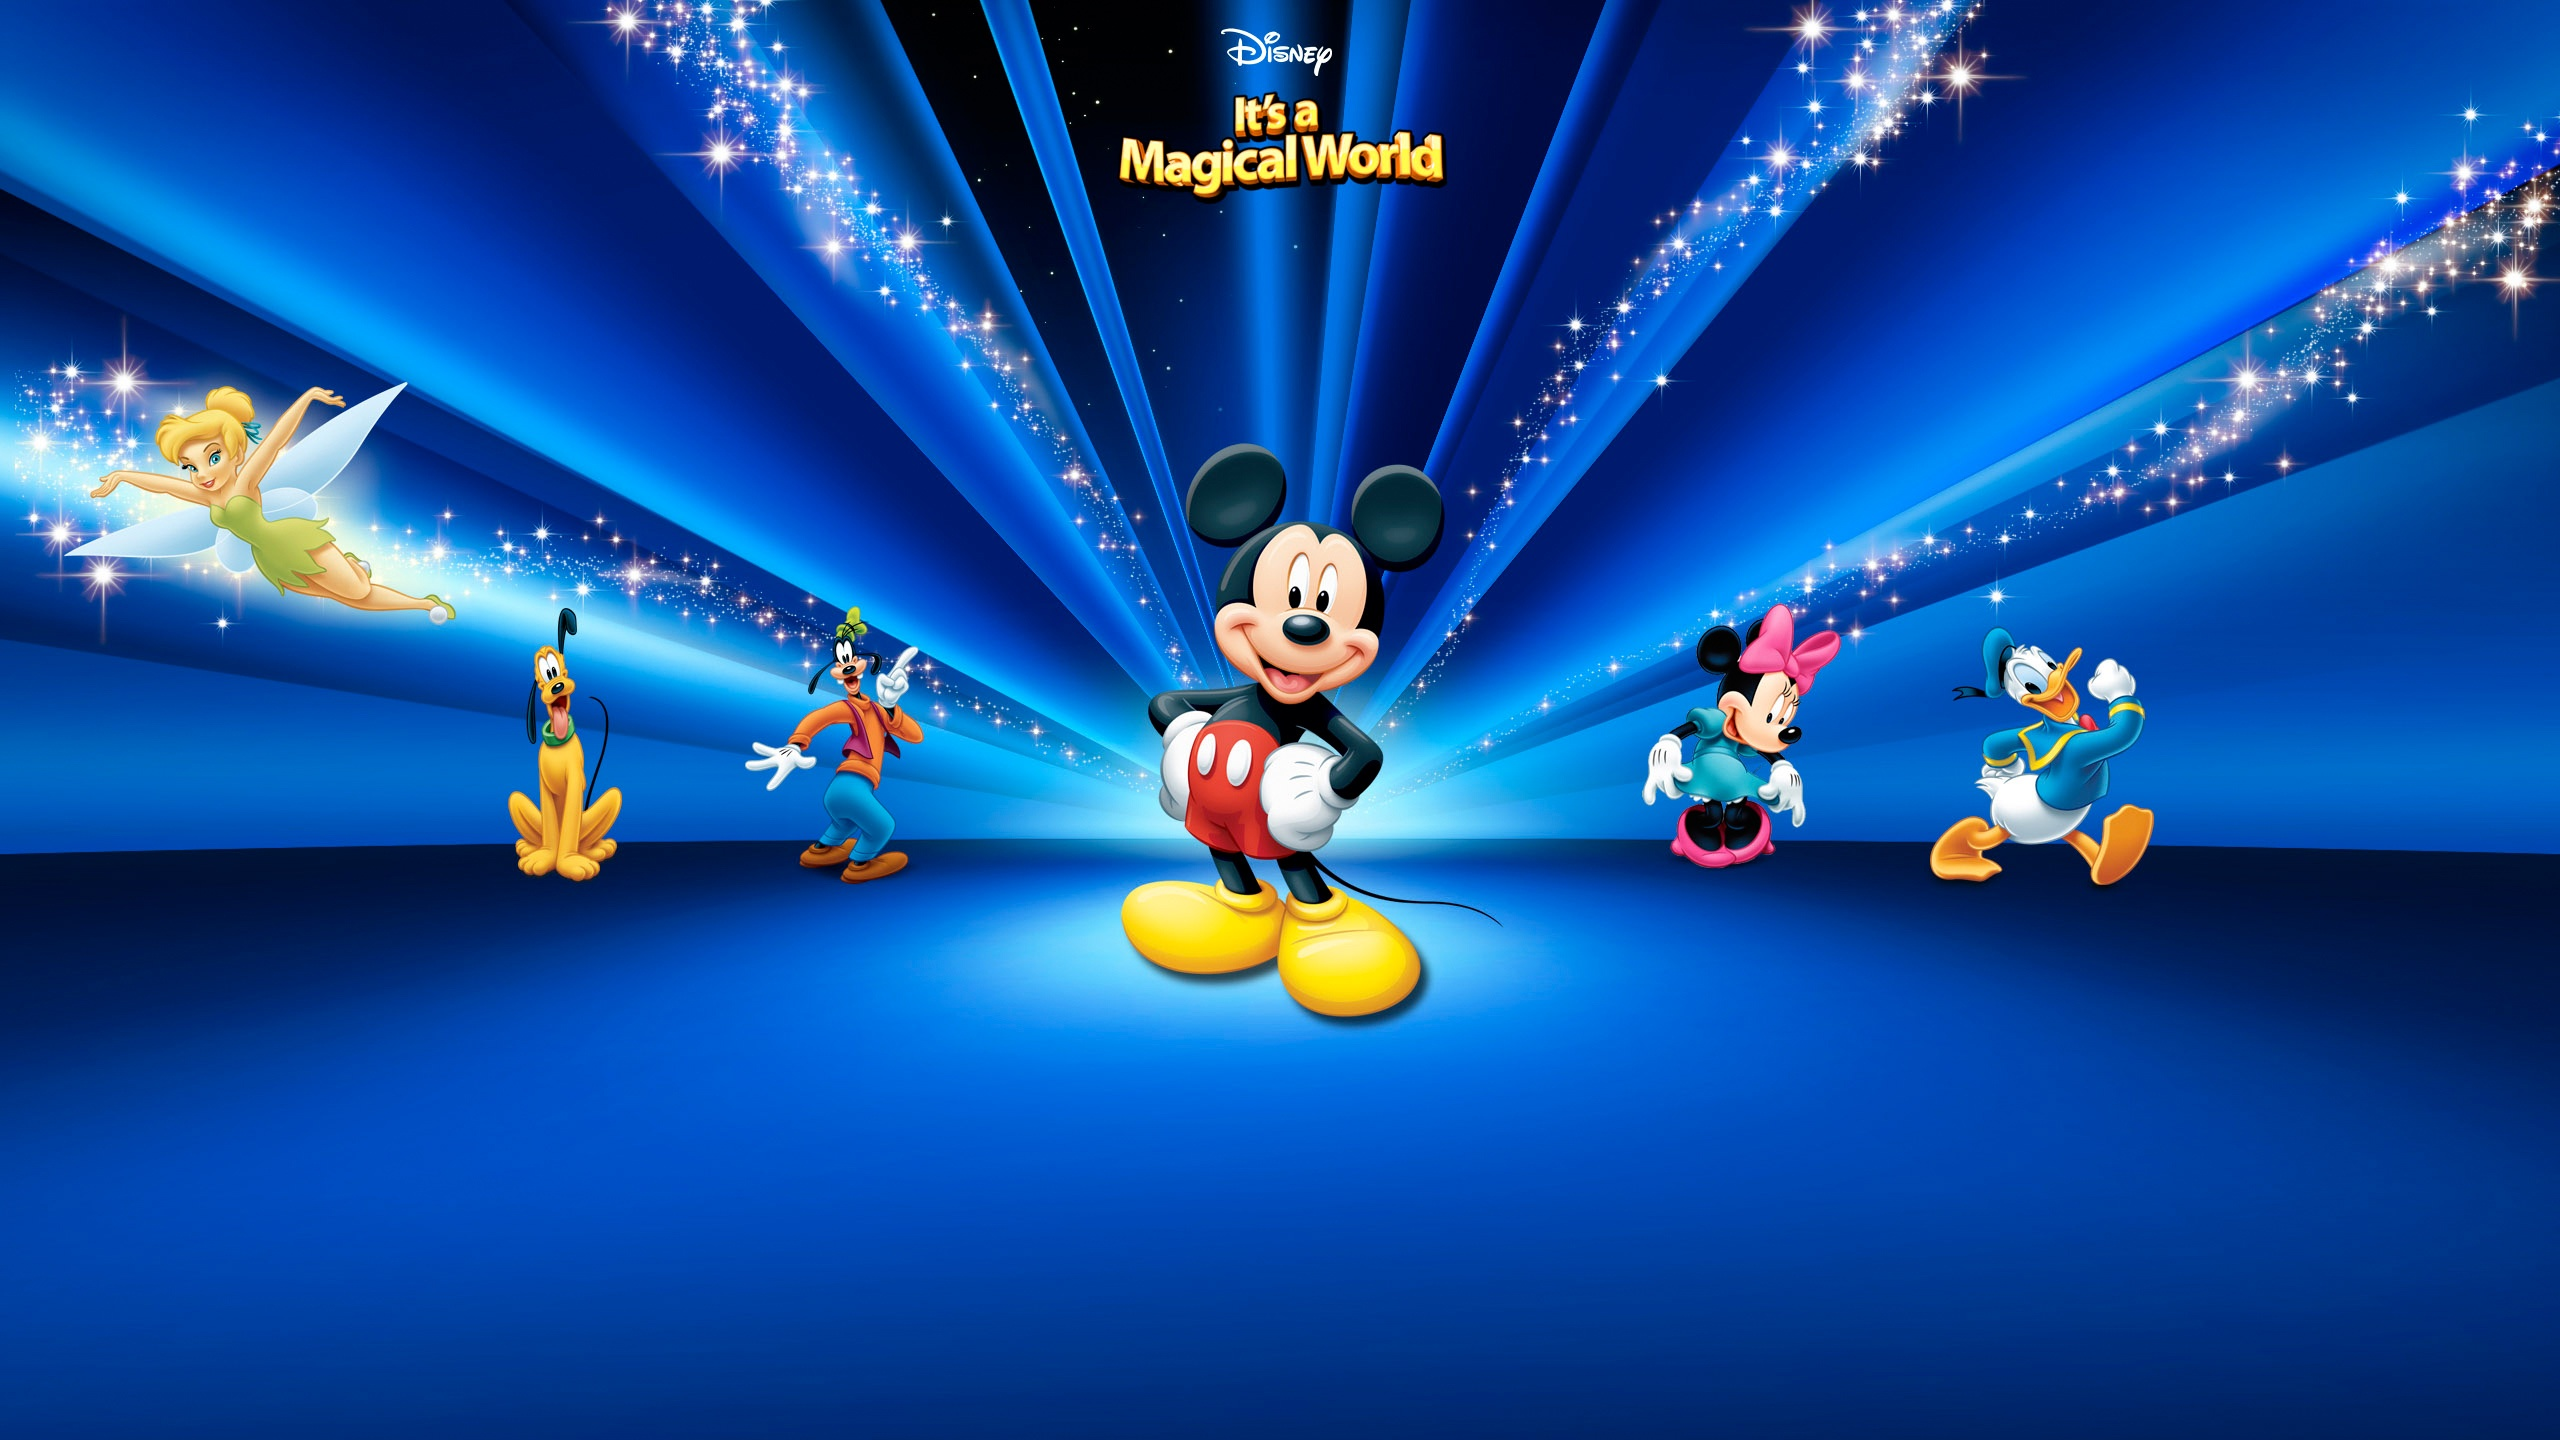 Disney Mickey Mouse World Wallpapers In Jpg Format For Free Download